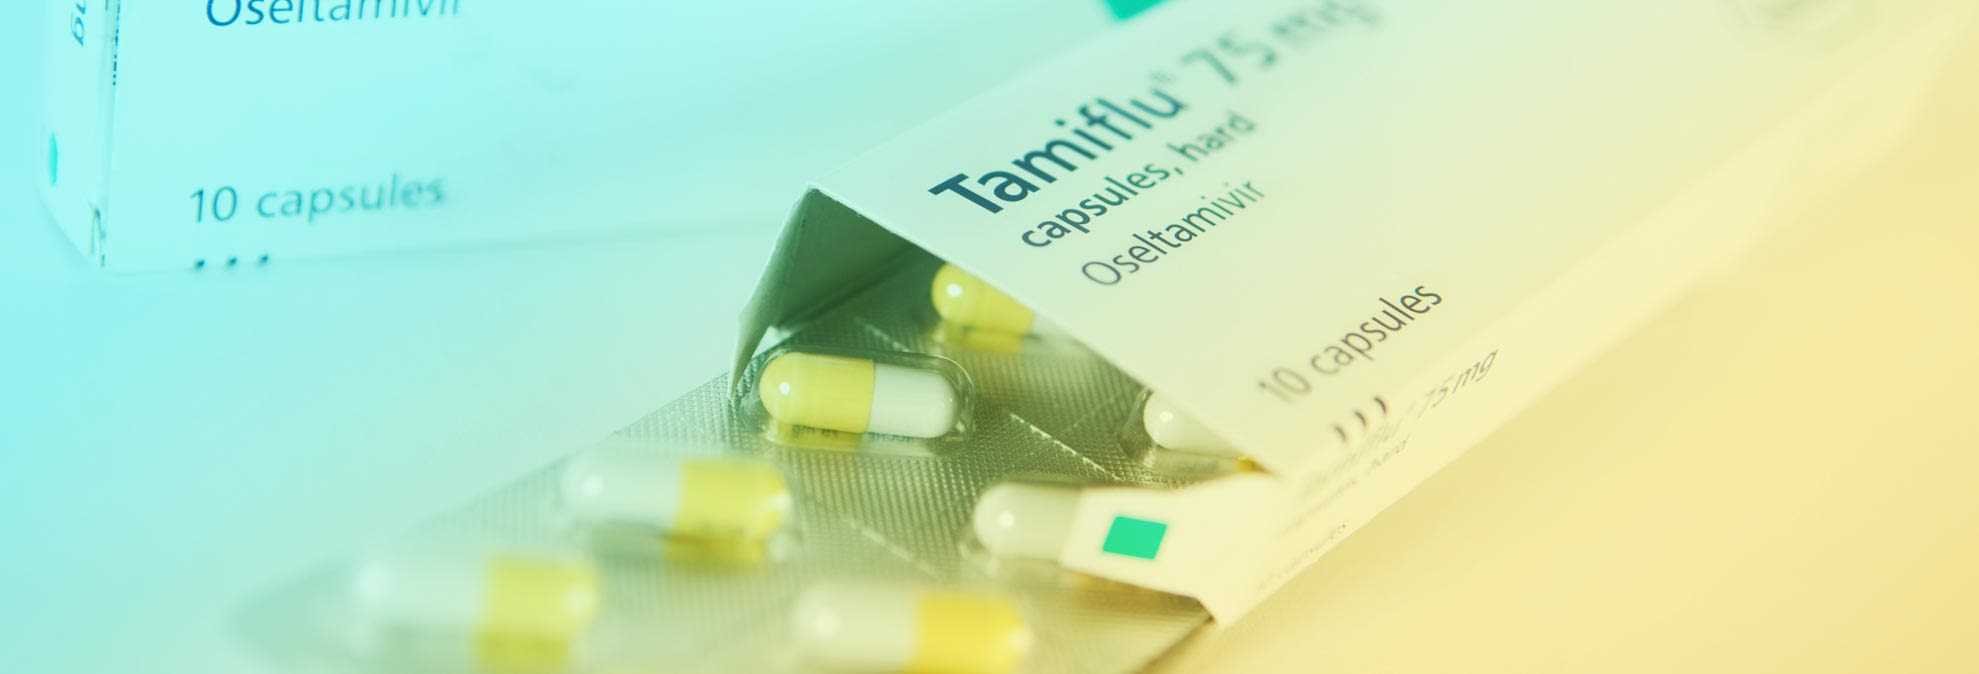 Do You Need Tamiflu For The Flu Consumer Reports